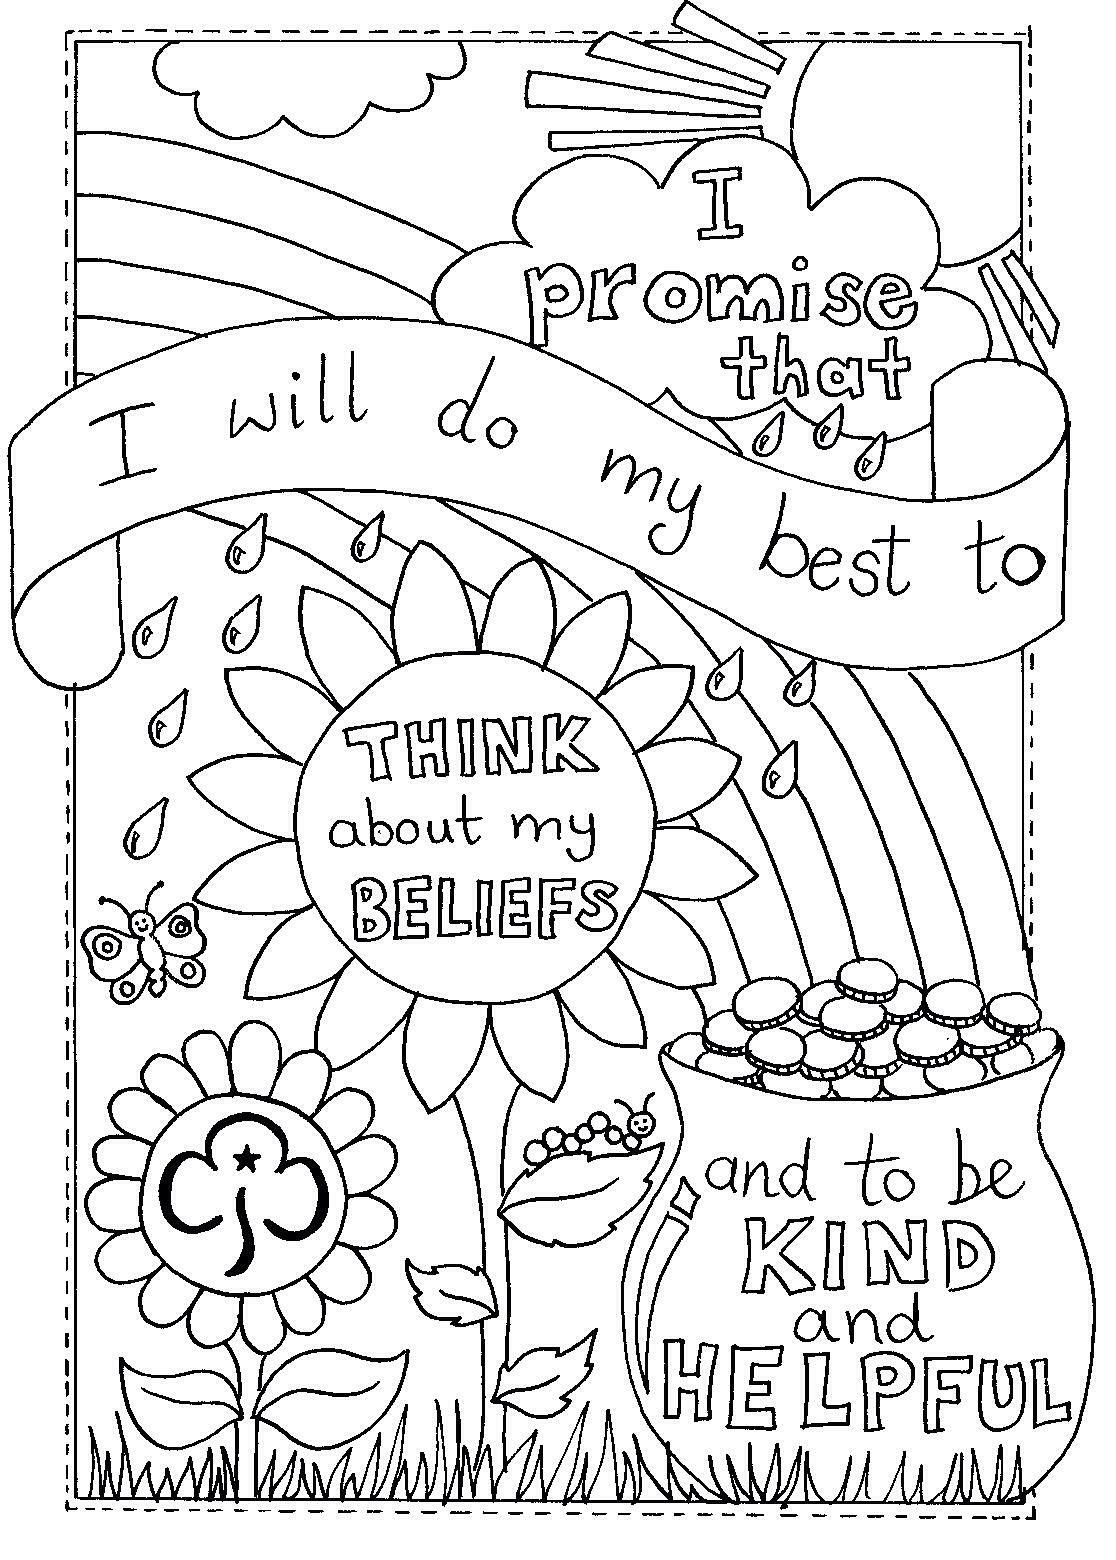 Such a cute coloring page to think about our own beliefs